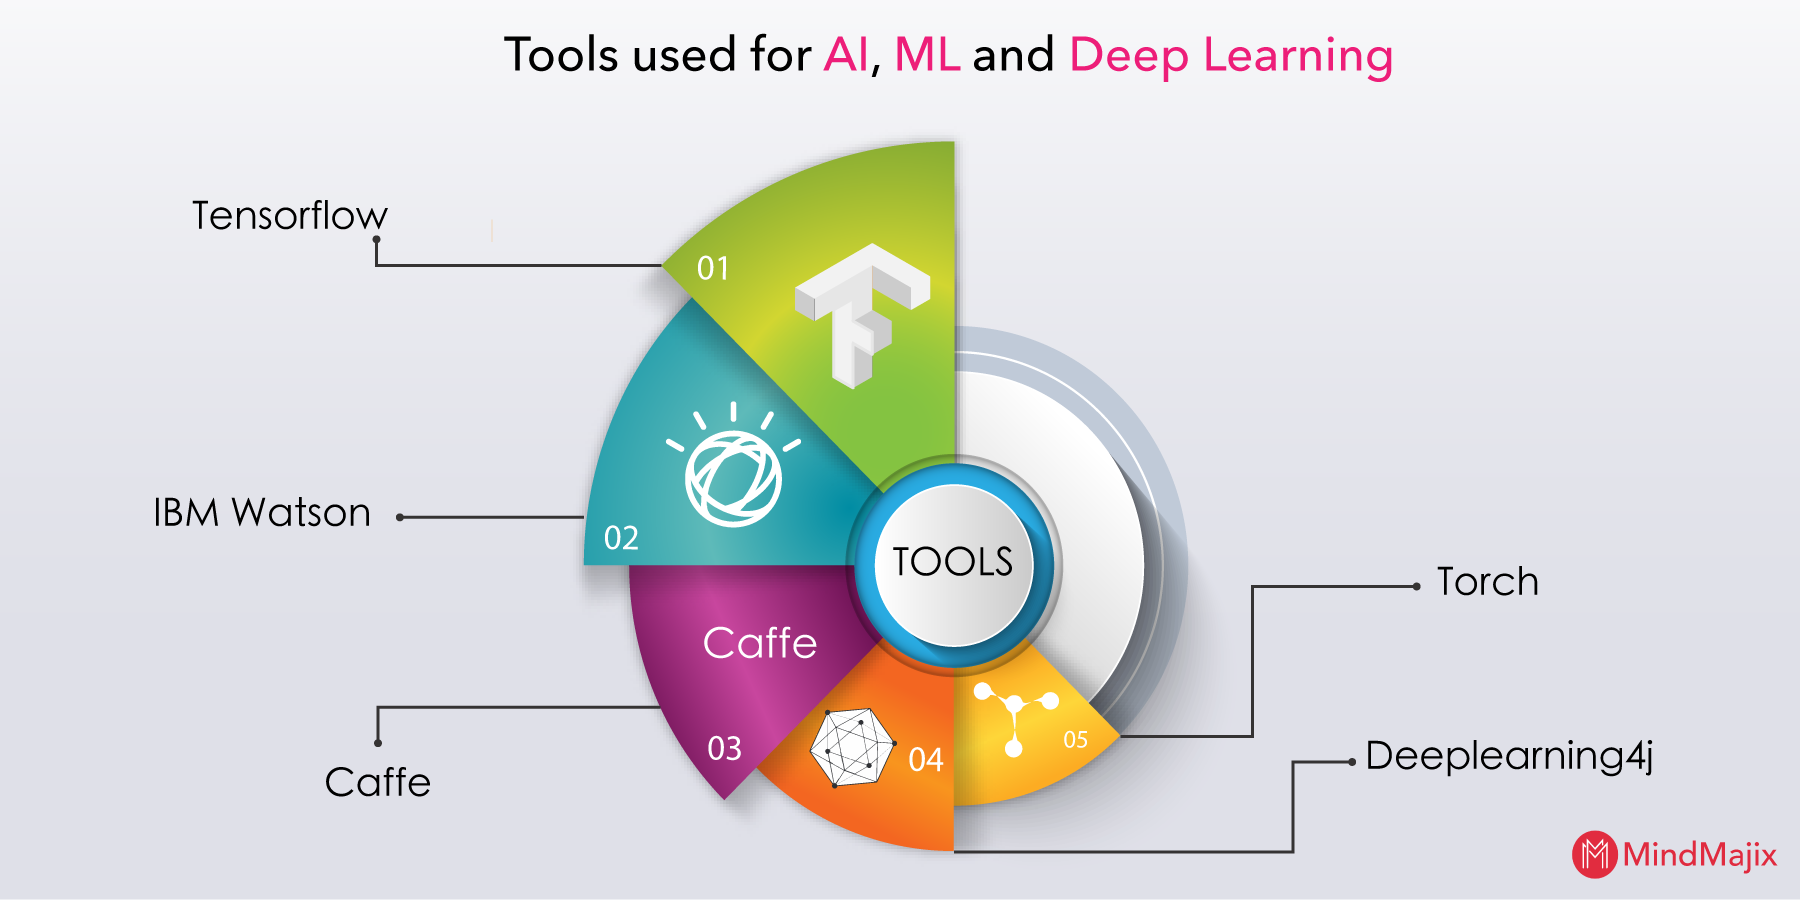 Tools used for AI, ML and Deep Learning